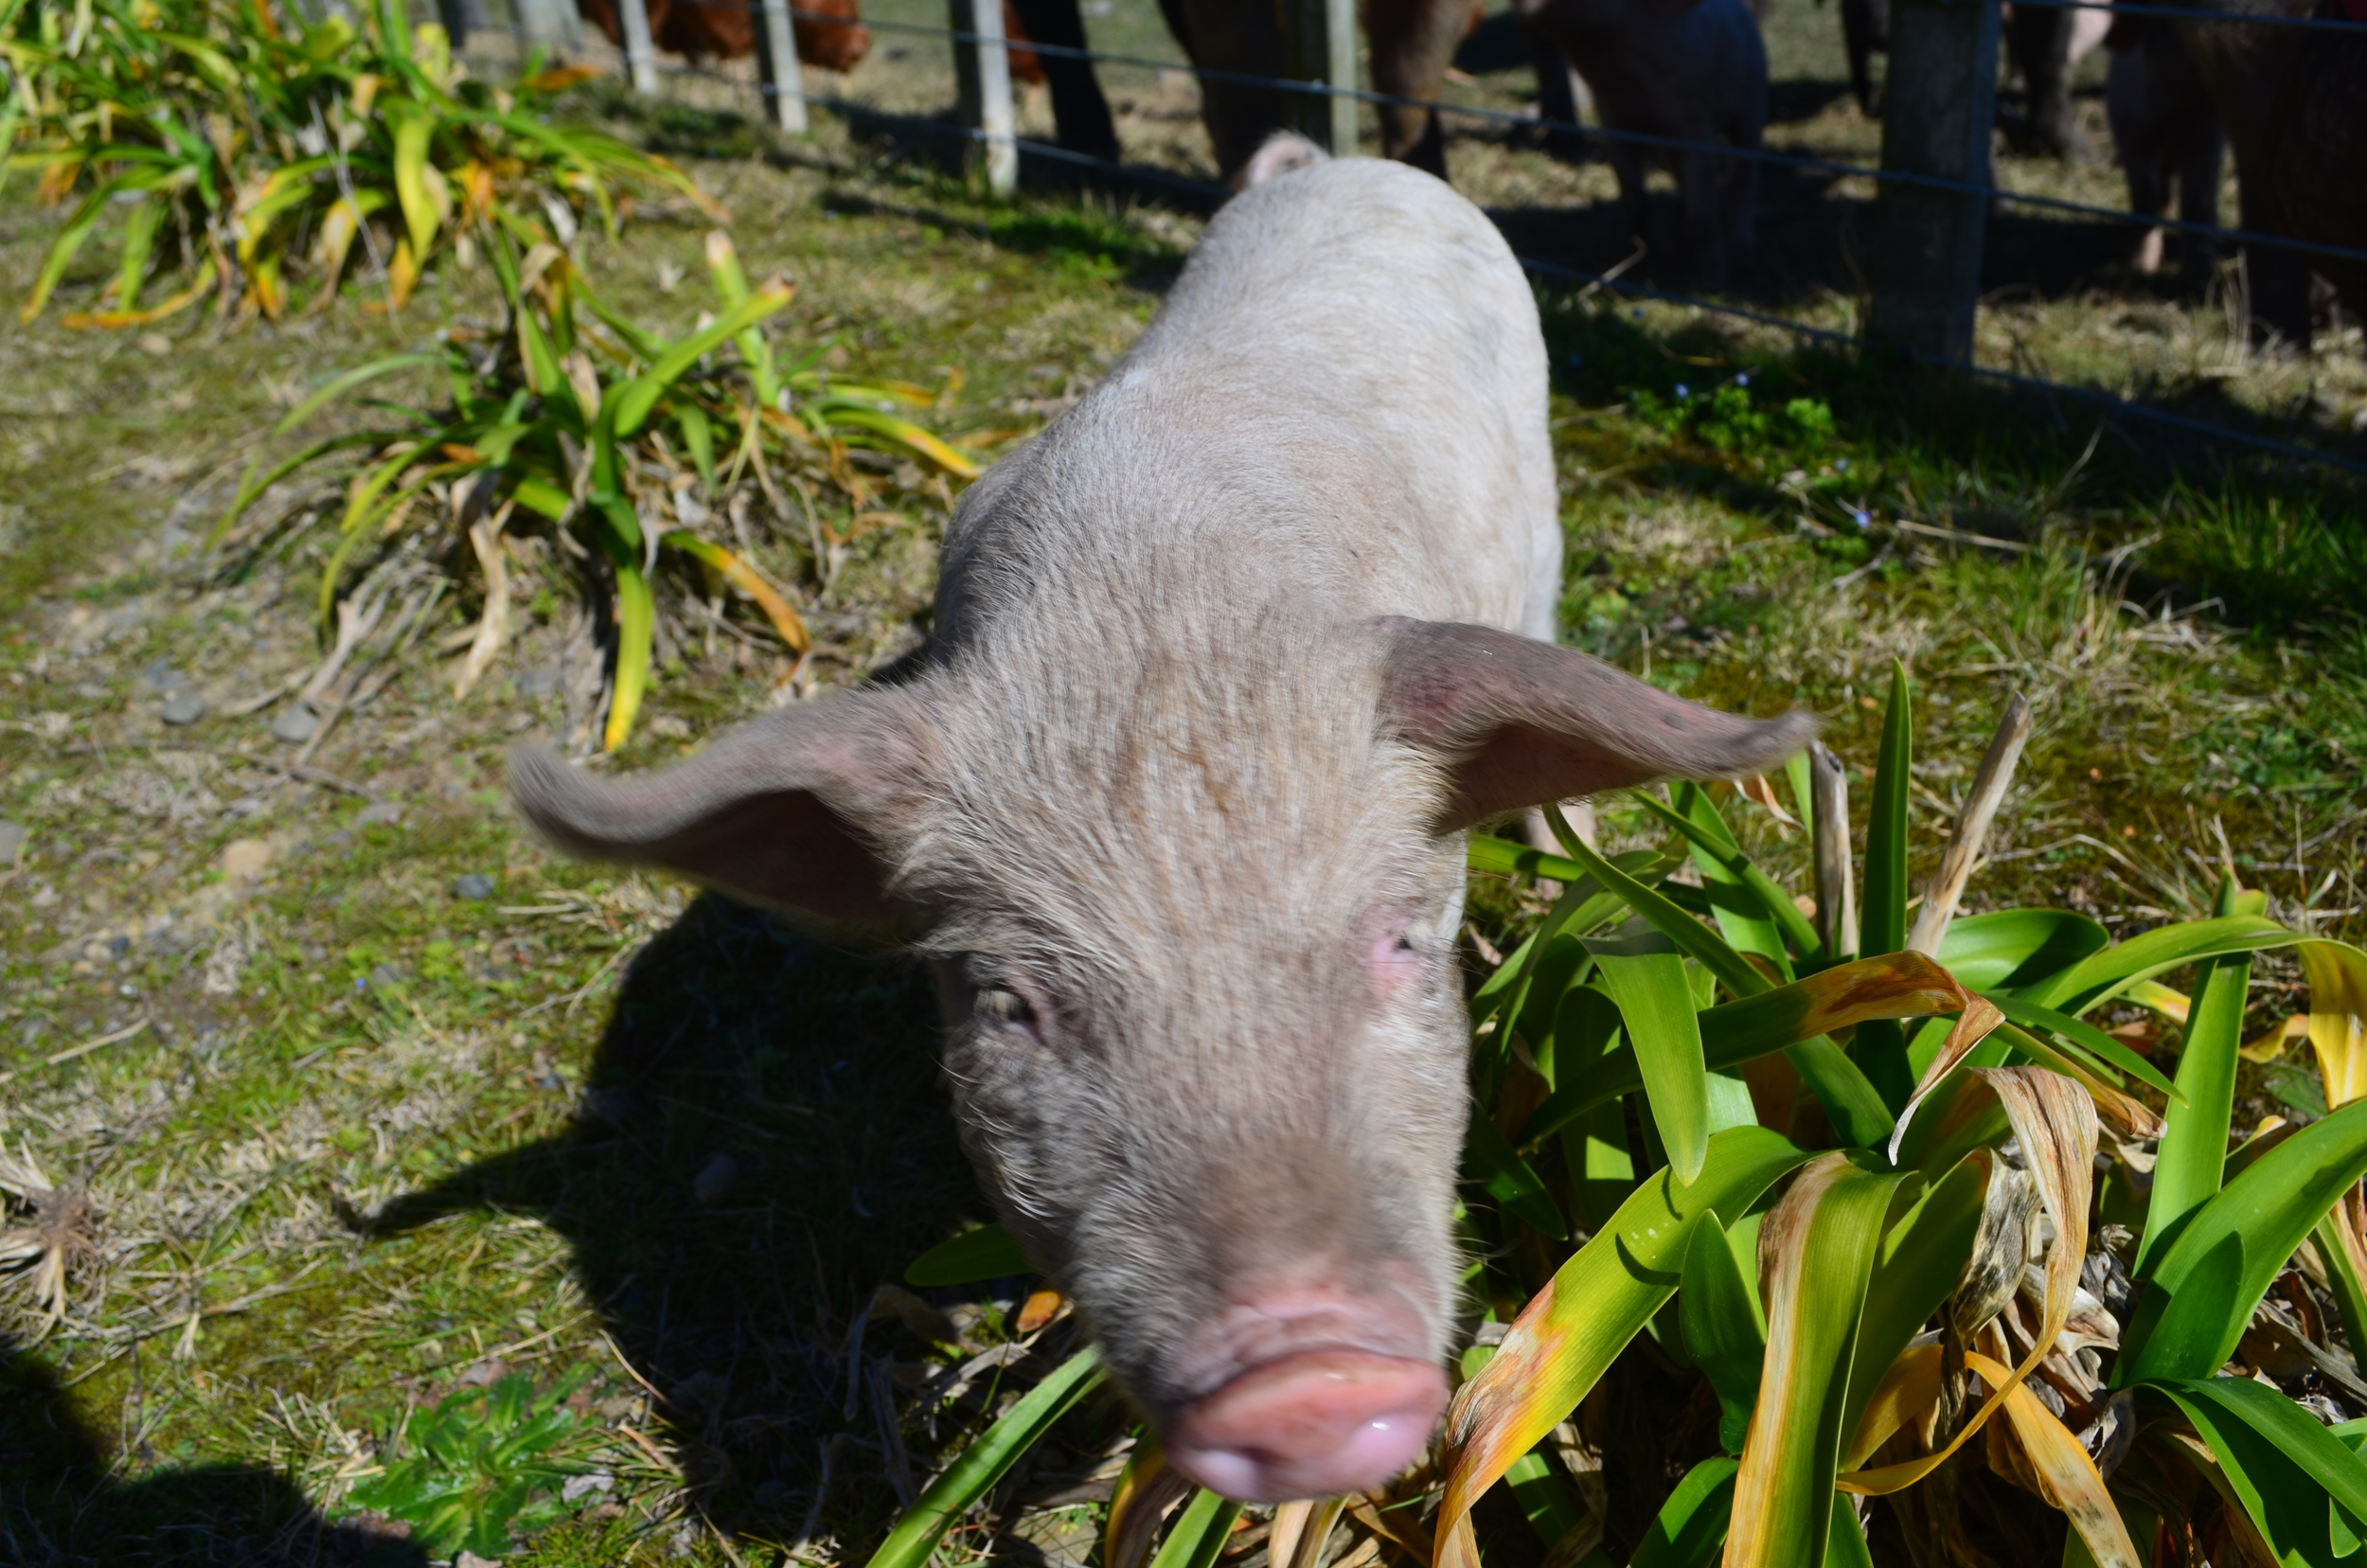 This little piglet got so over excited that he escaped from the pen, and we had to catch him. Oops!